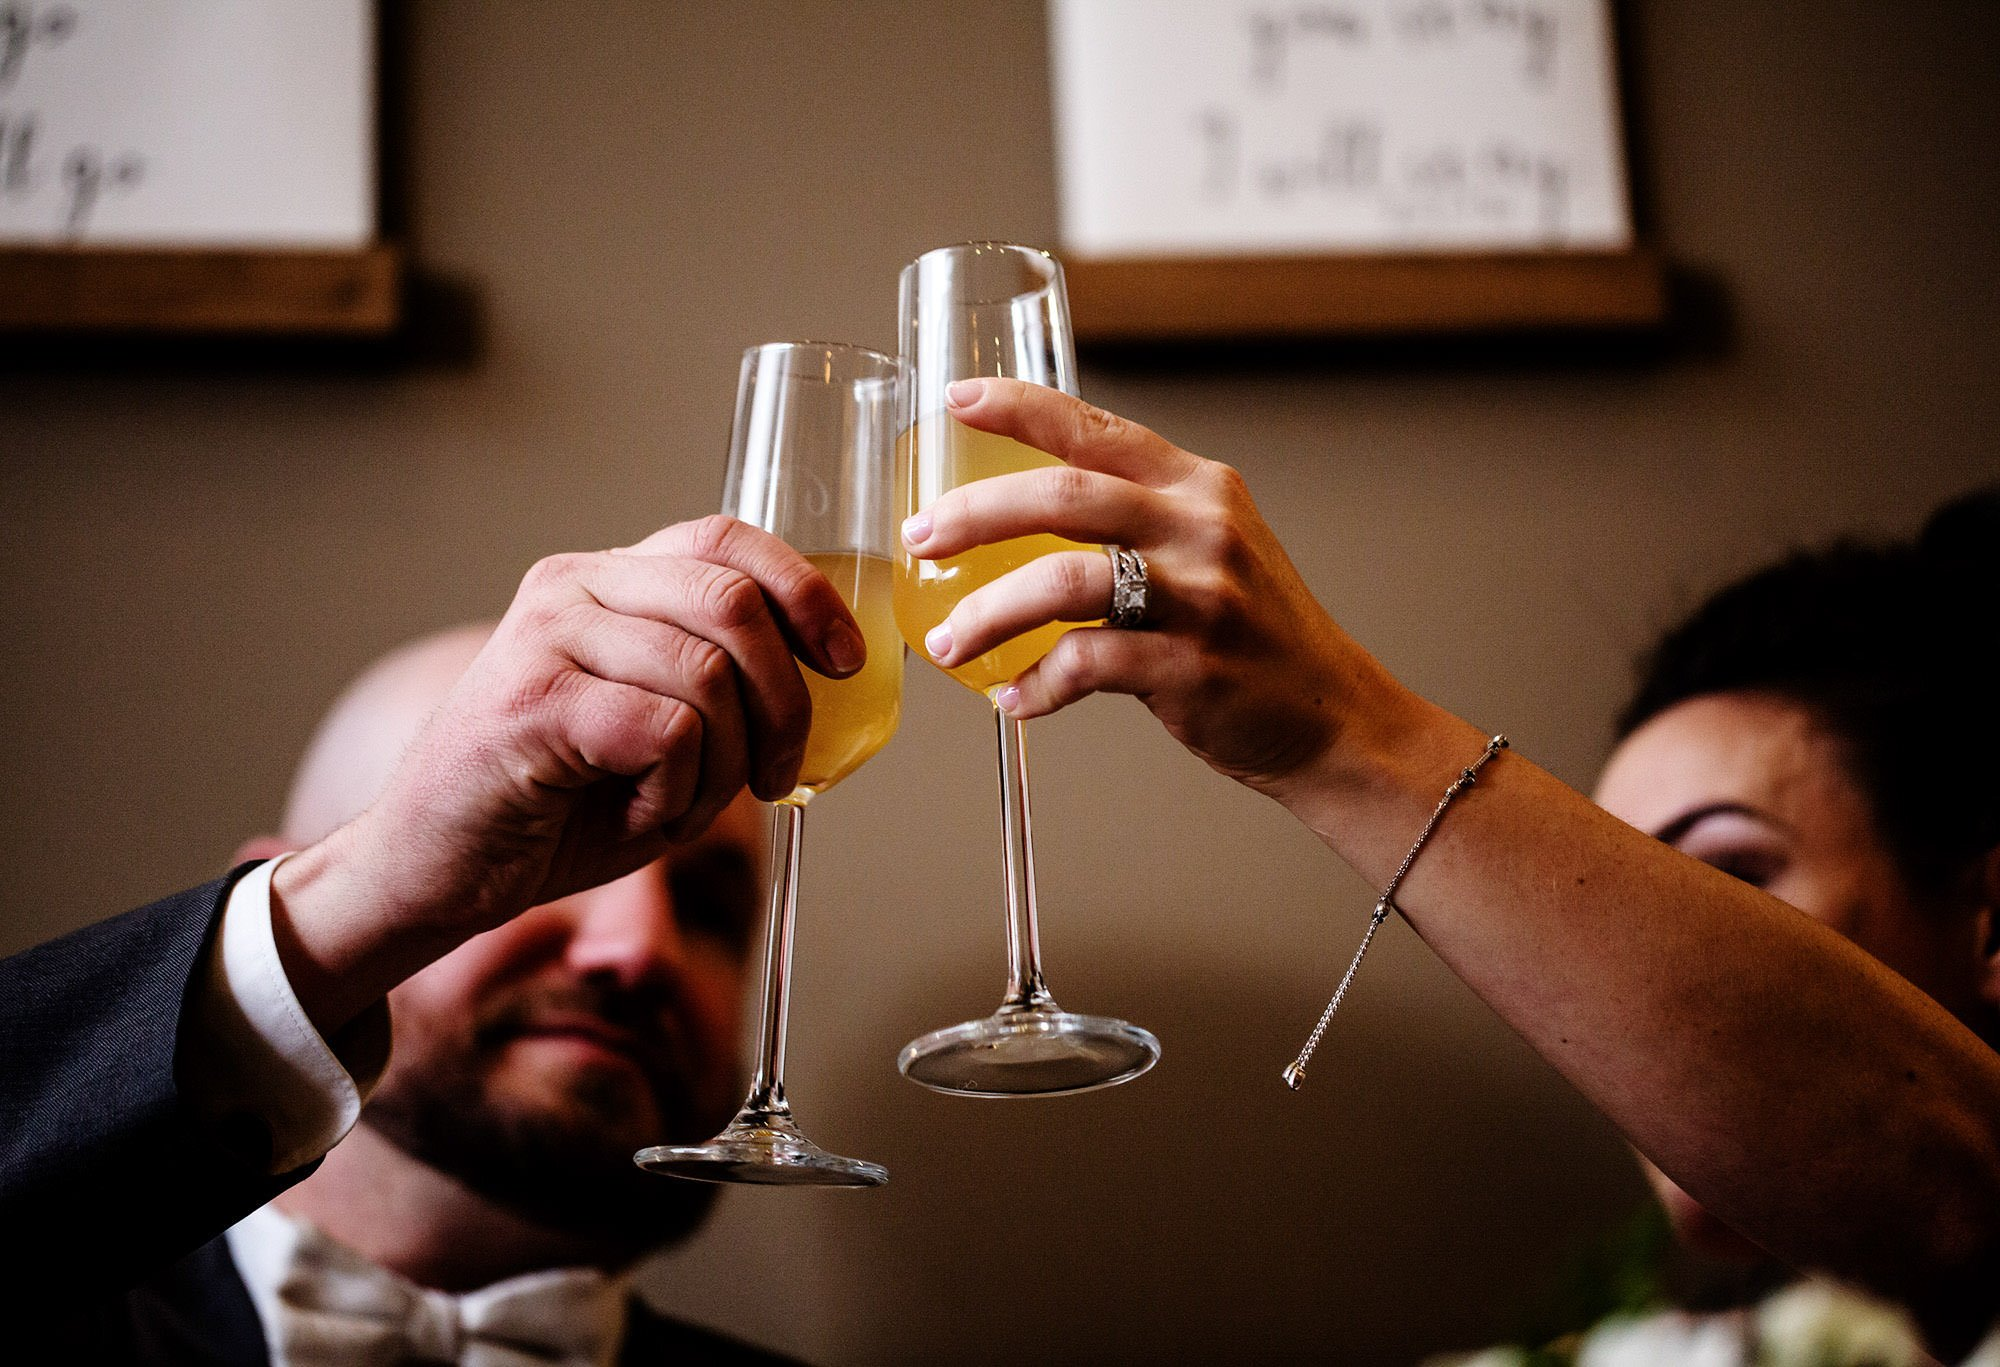 The bride and groom toast during the wedding reception at Silver Oak Mystic.